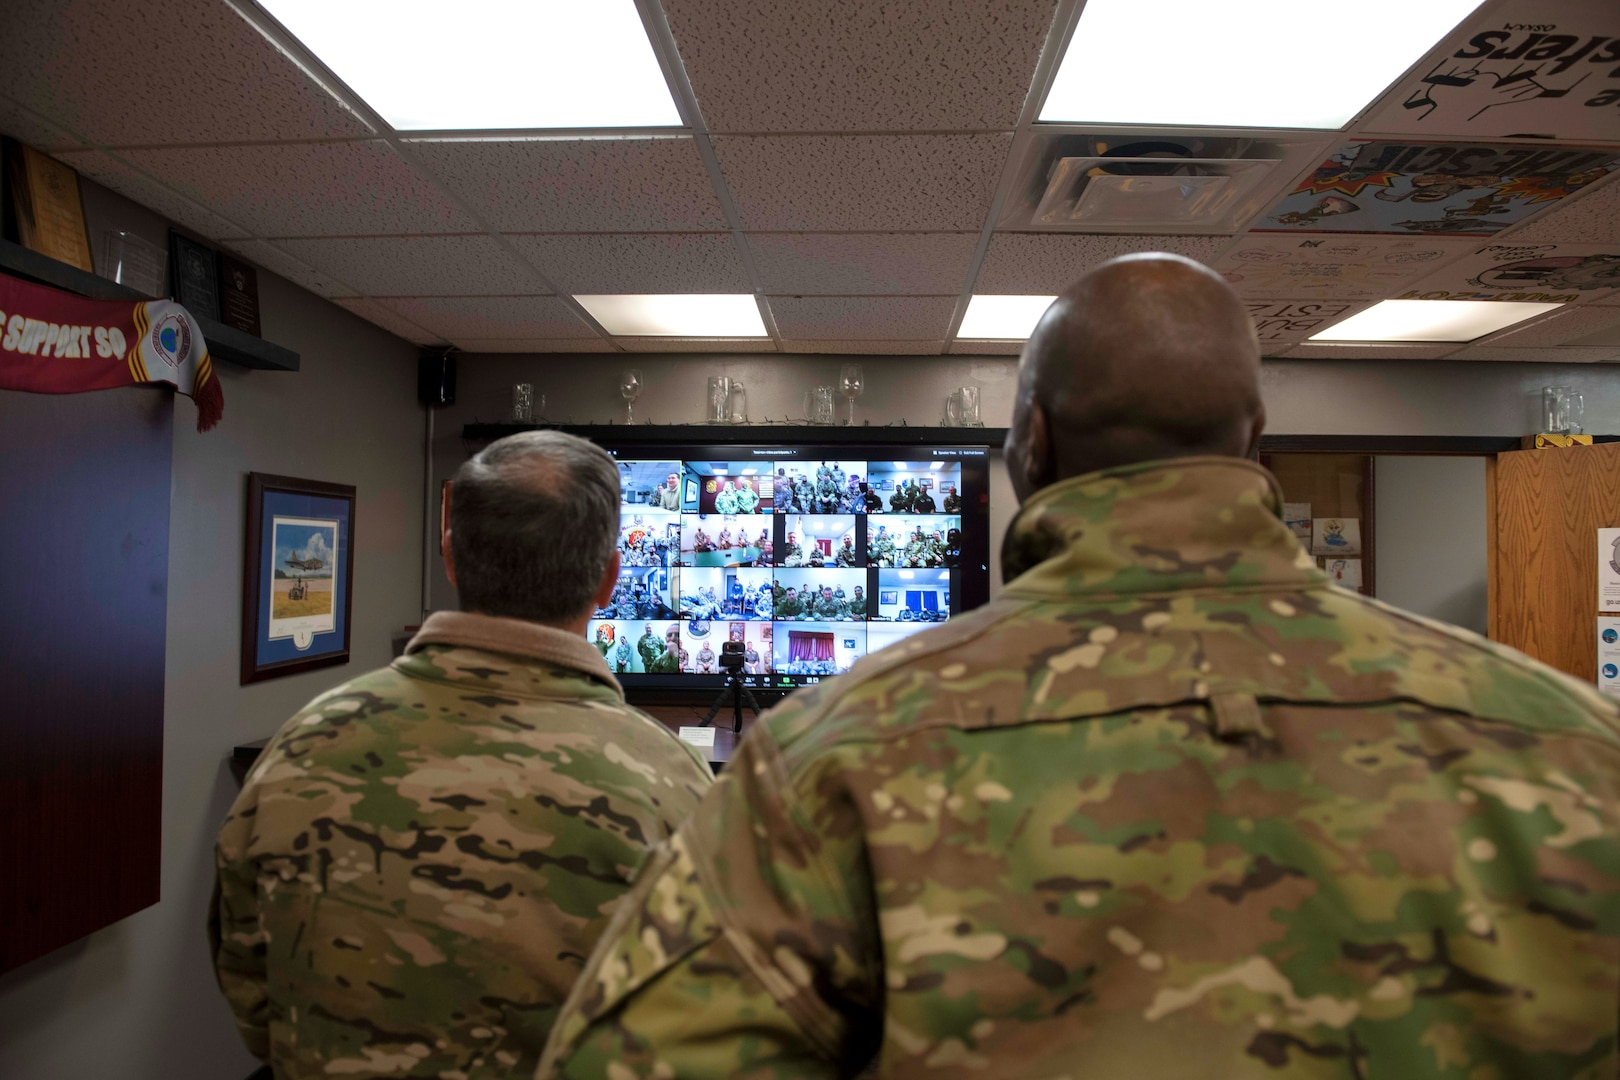 Air Force Chief of Staff Gen. David L. Goldfein and Chief Master Sgt. of the Air Force Kaleth O. Wright participate in a Zoom meeting in the 91st Missile Wing at Minot Air Force Base, North Dakota, May 14, 2020. Air Force Chief of Staff Gen. David L. Goldfein and Chief Master Sgt. of the Air Force Kaleth O. Wright's visit centered around the efforts of Team Minot to combat the COVID-19 pandemic and successfully execute the Global Striker mission.  (U.S. Air Force photo by Airman 1st Class Jesse Jenny)